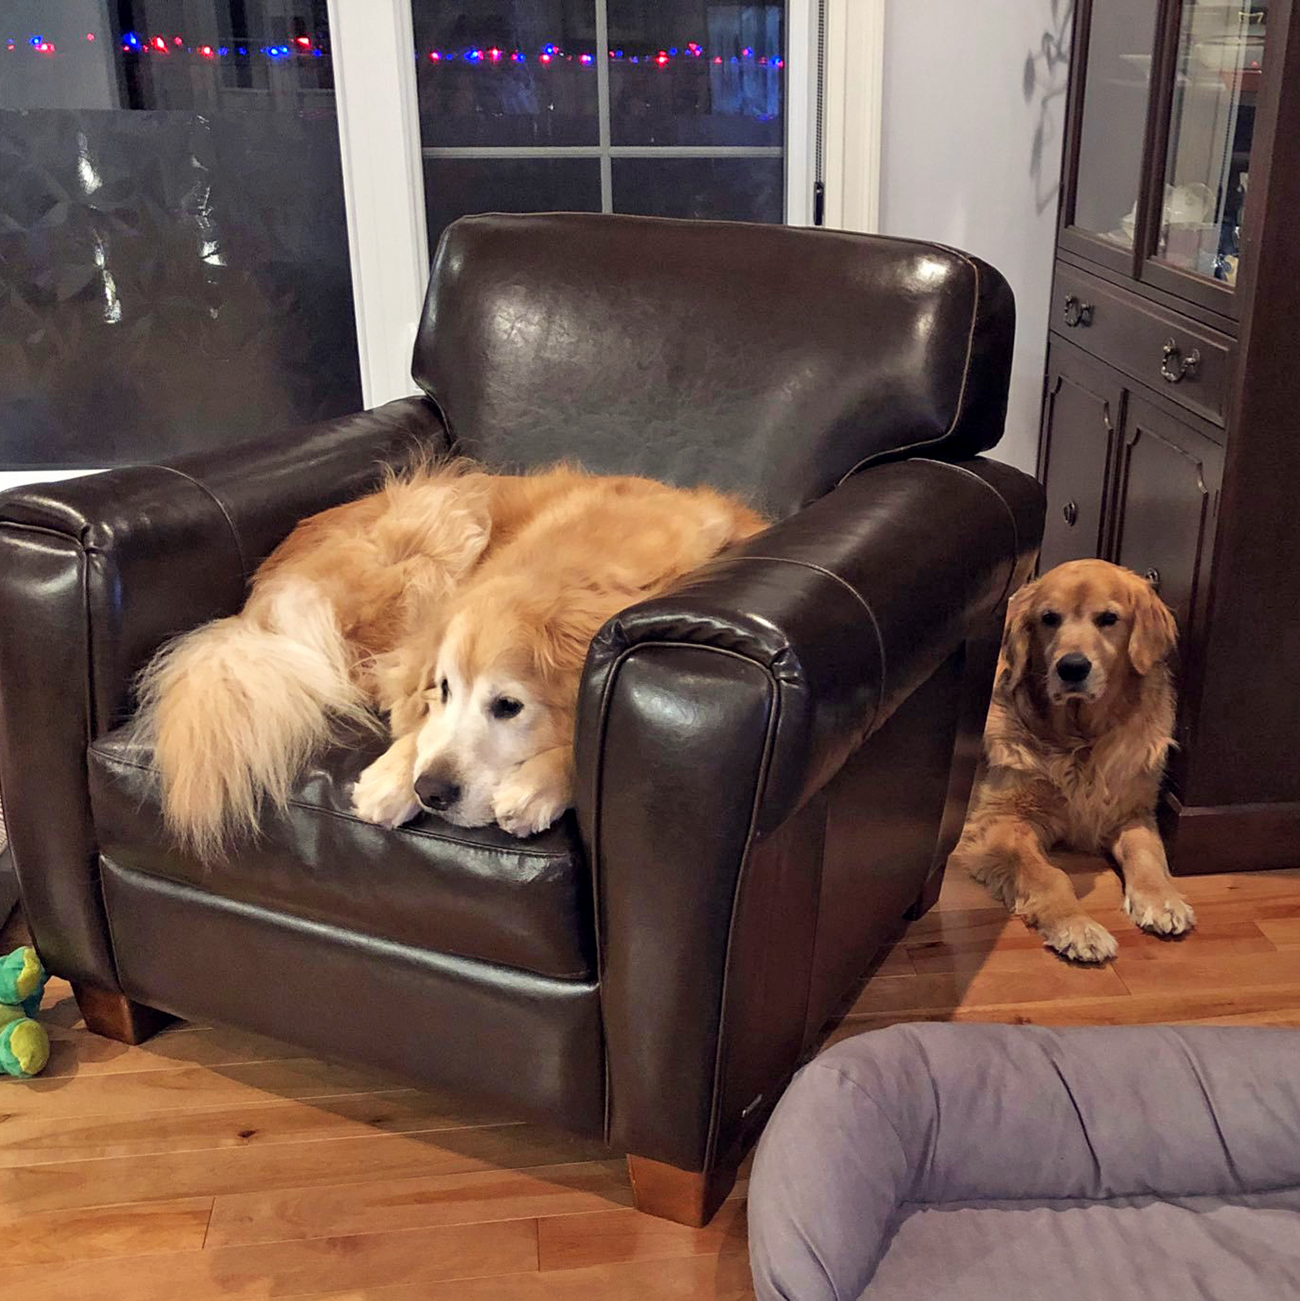 Large dog curls up in leather arm chair, dog's sibling lays behind leather arm chair